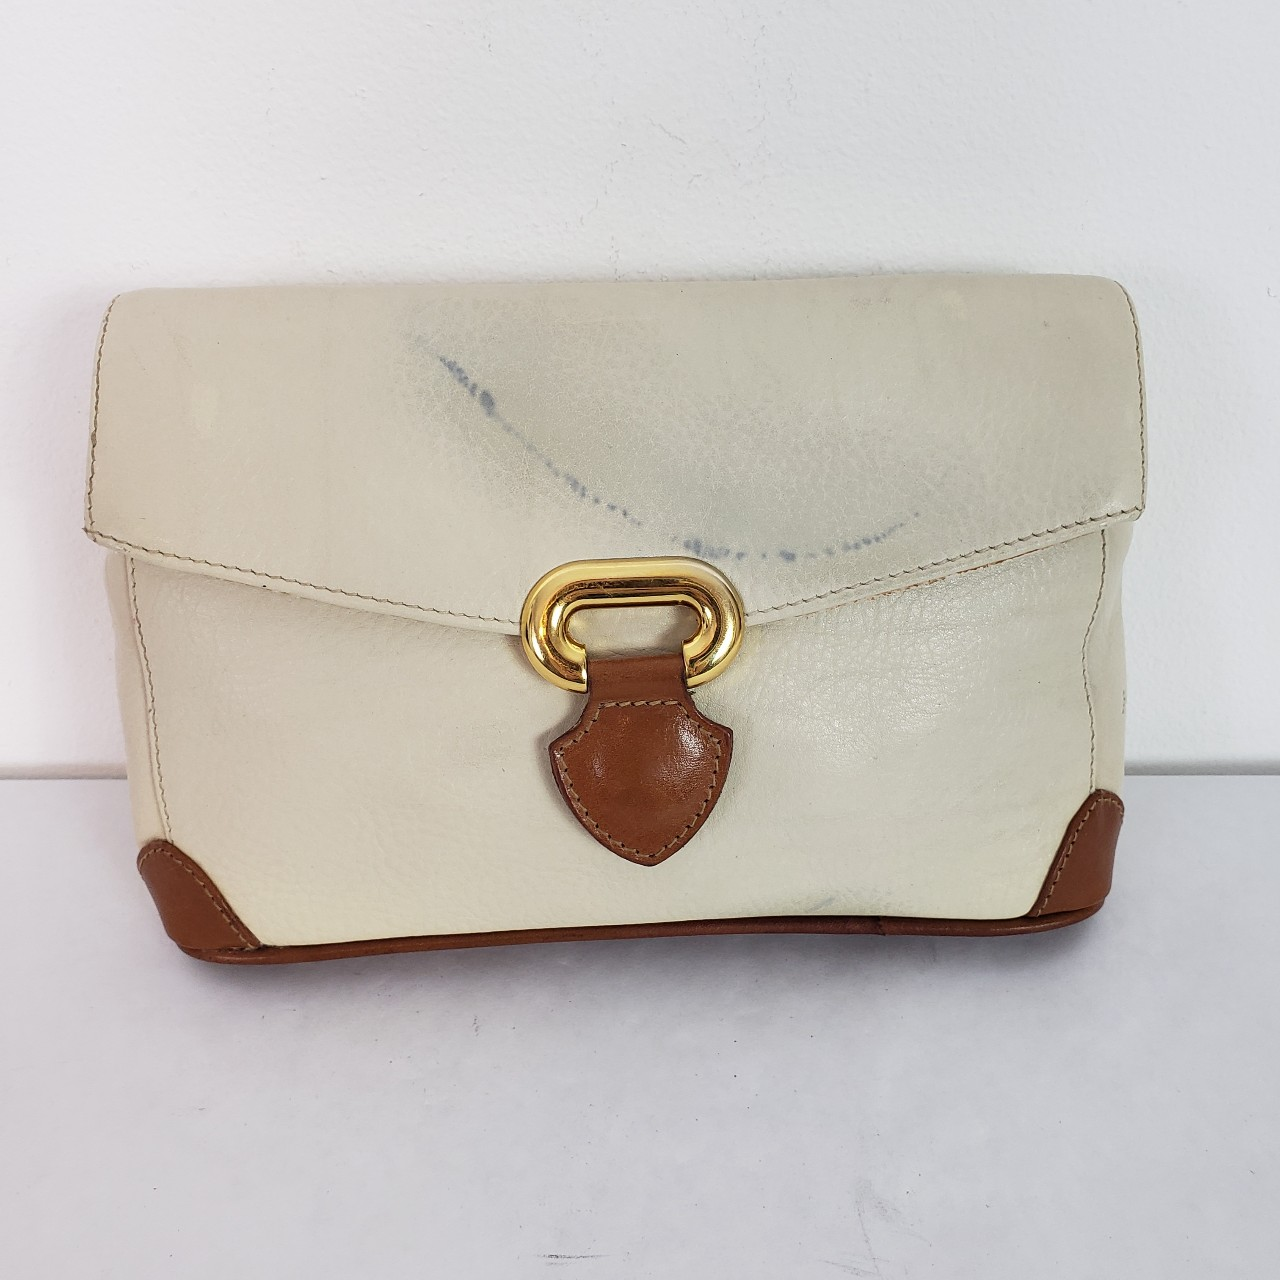 Product Image 1 - Furla leather clutch bag Cream with